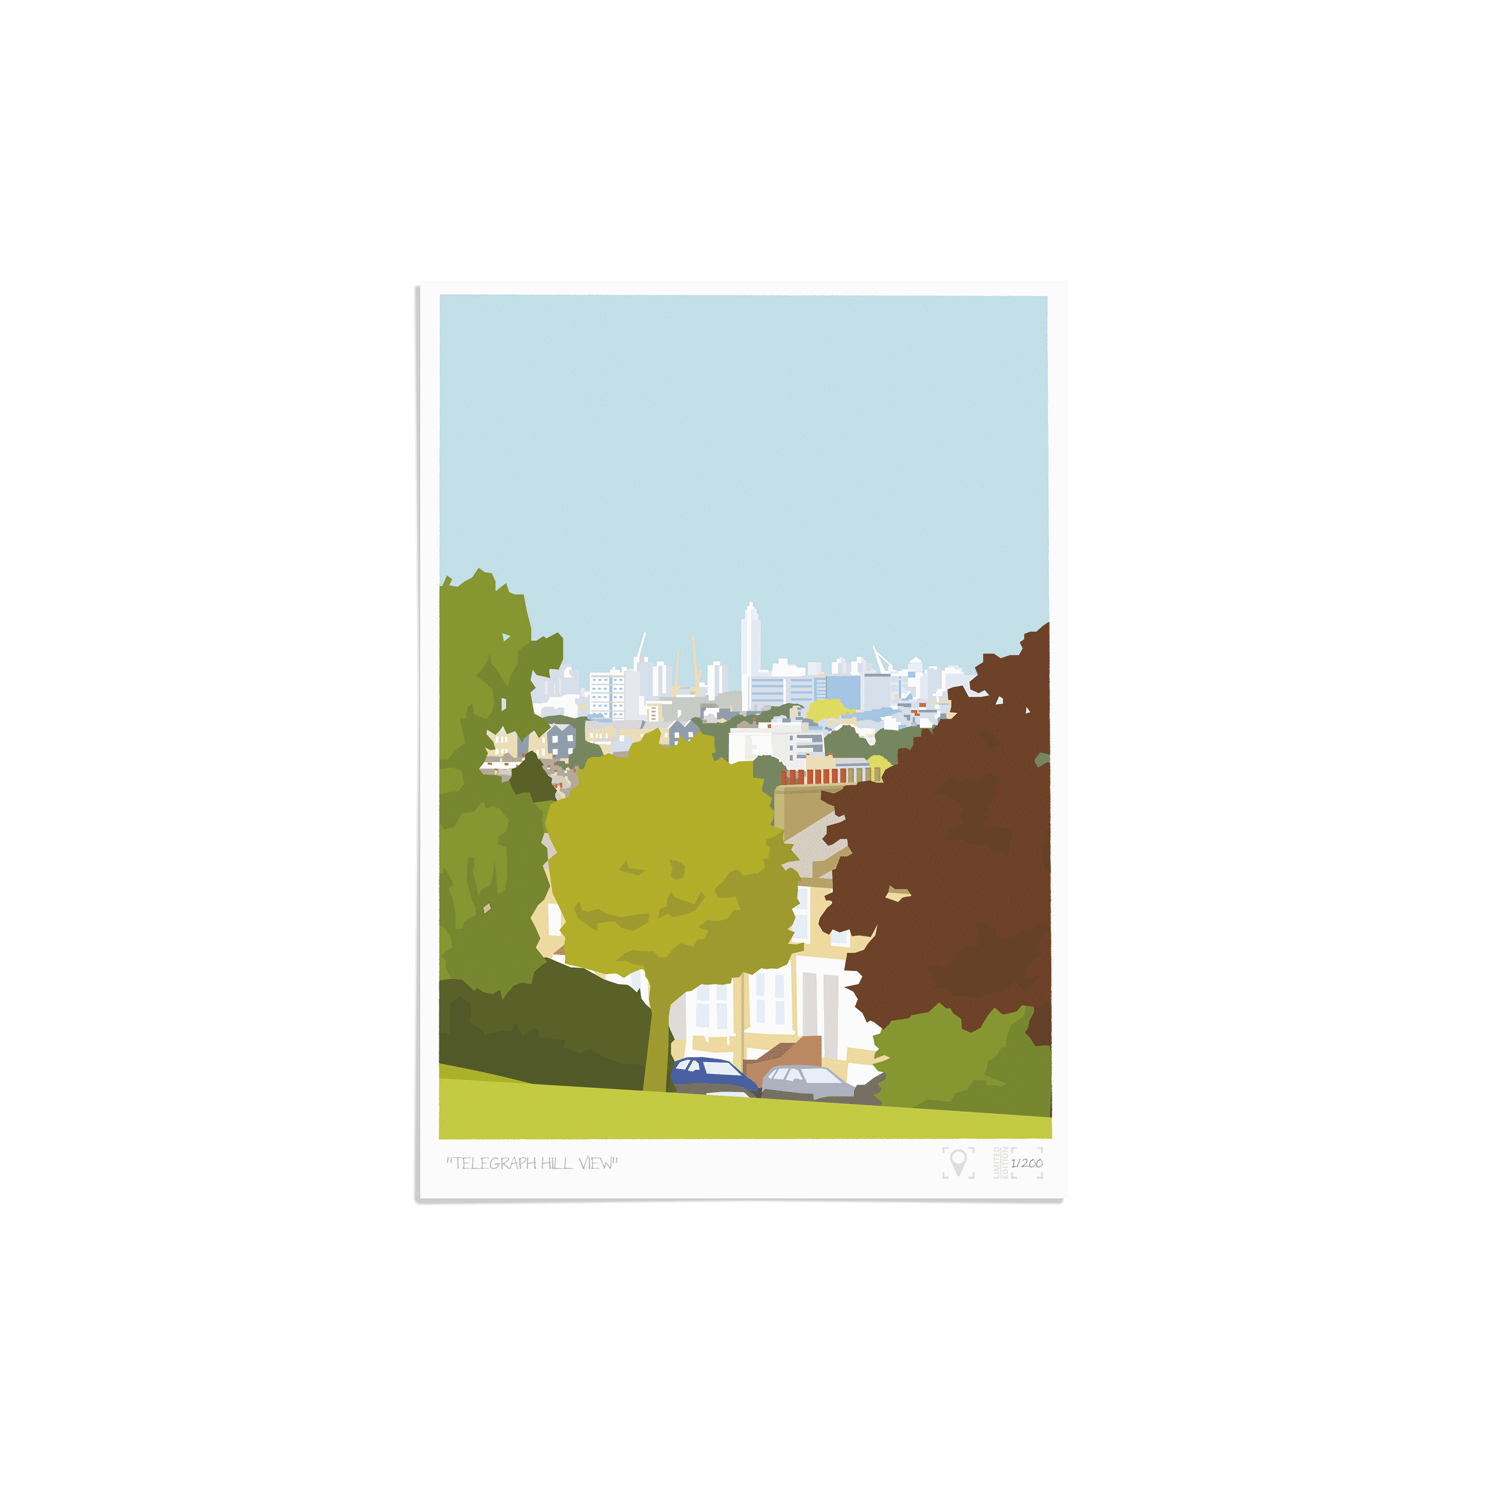 Place in Print Telegraph Hill View Brockley Art Print Unframed